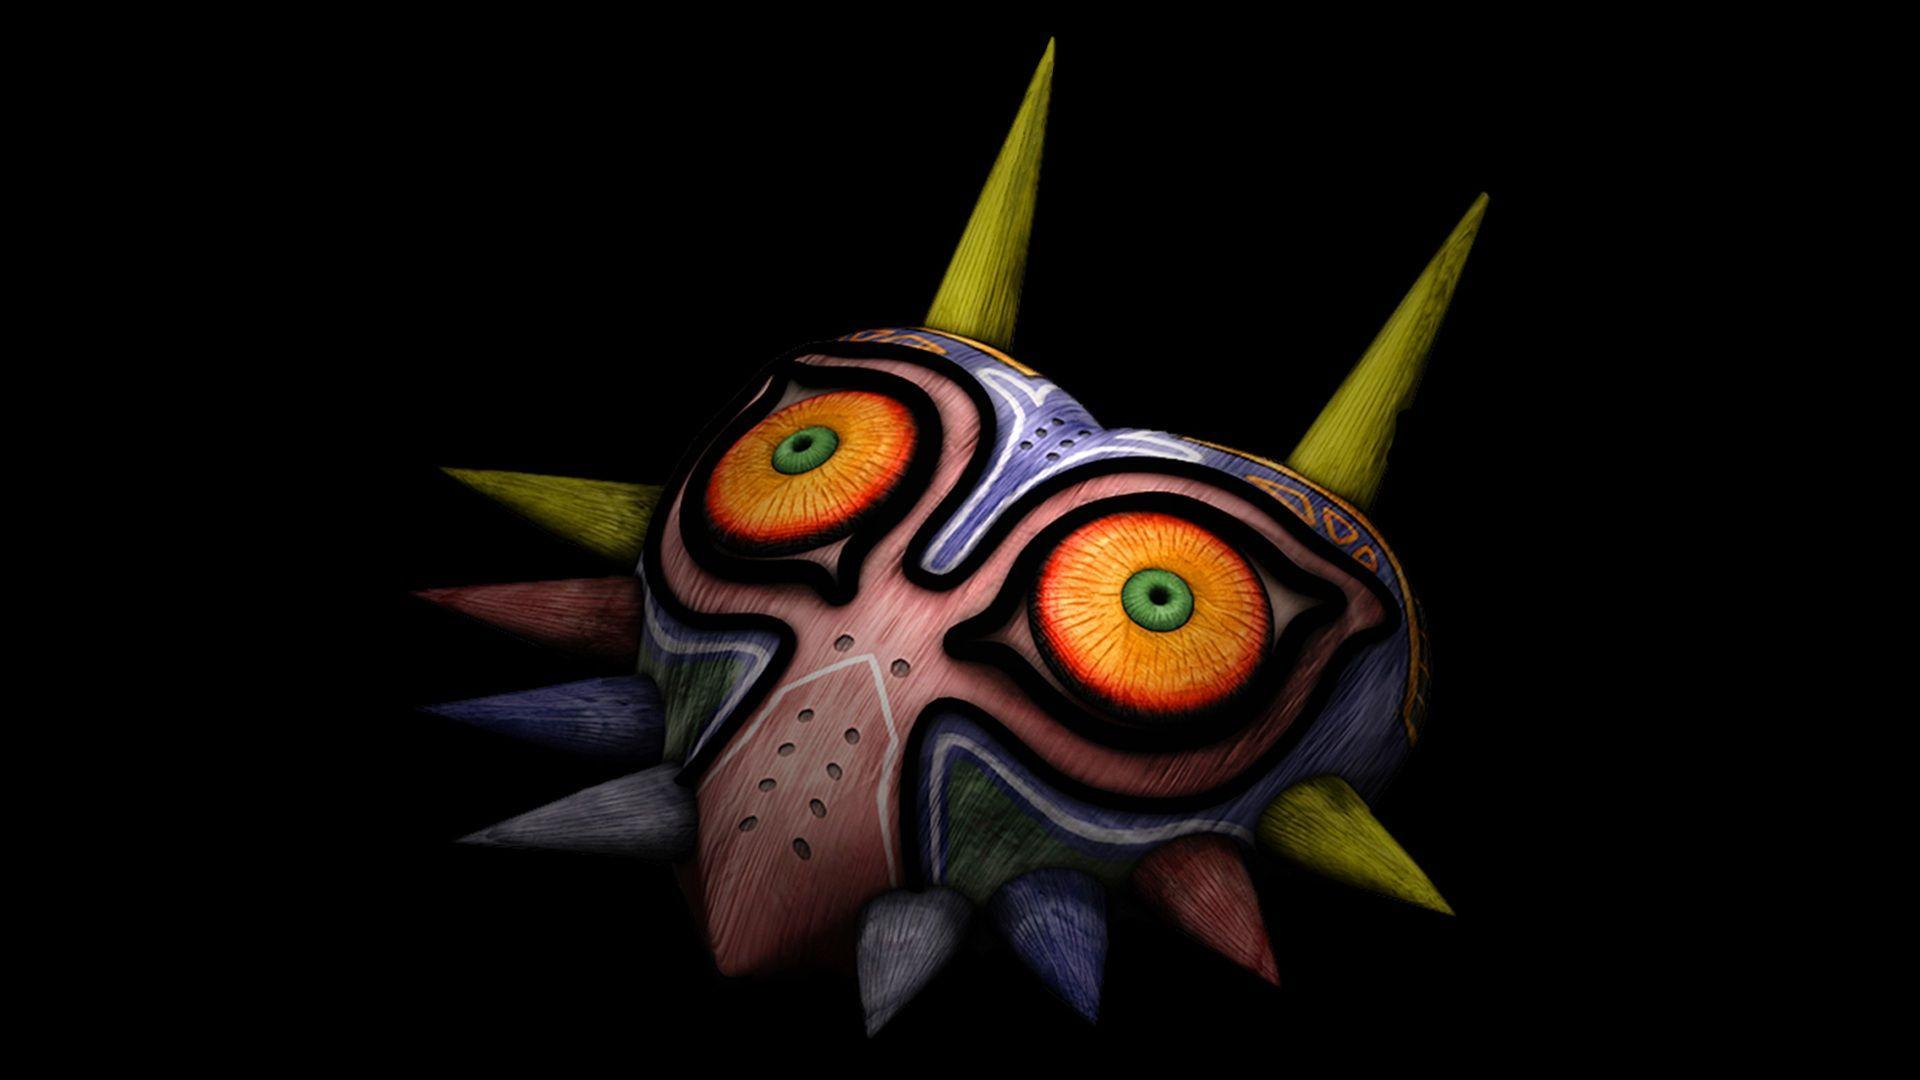 Majora S Mask Desktop Background: Zelda Desktop Backgrounds